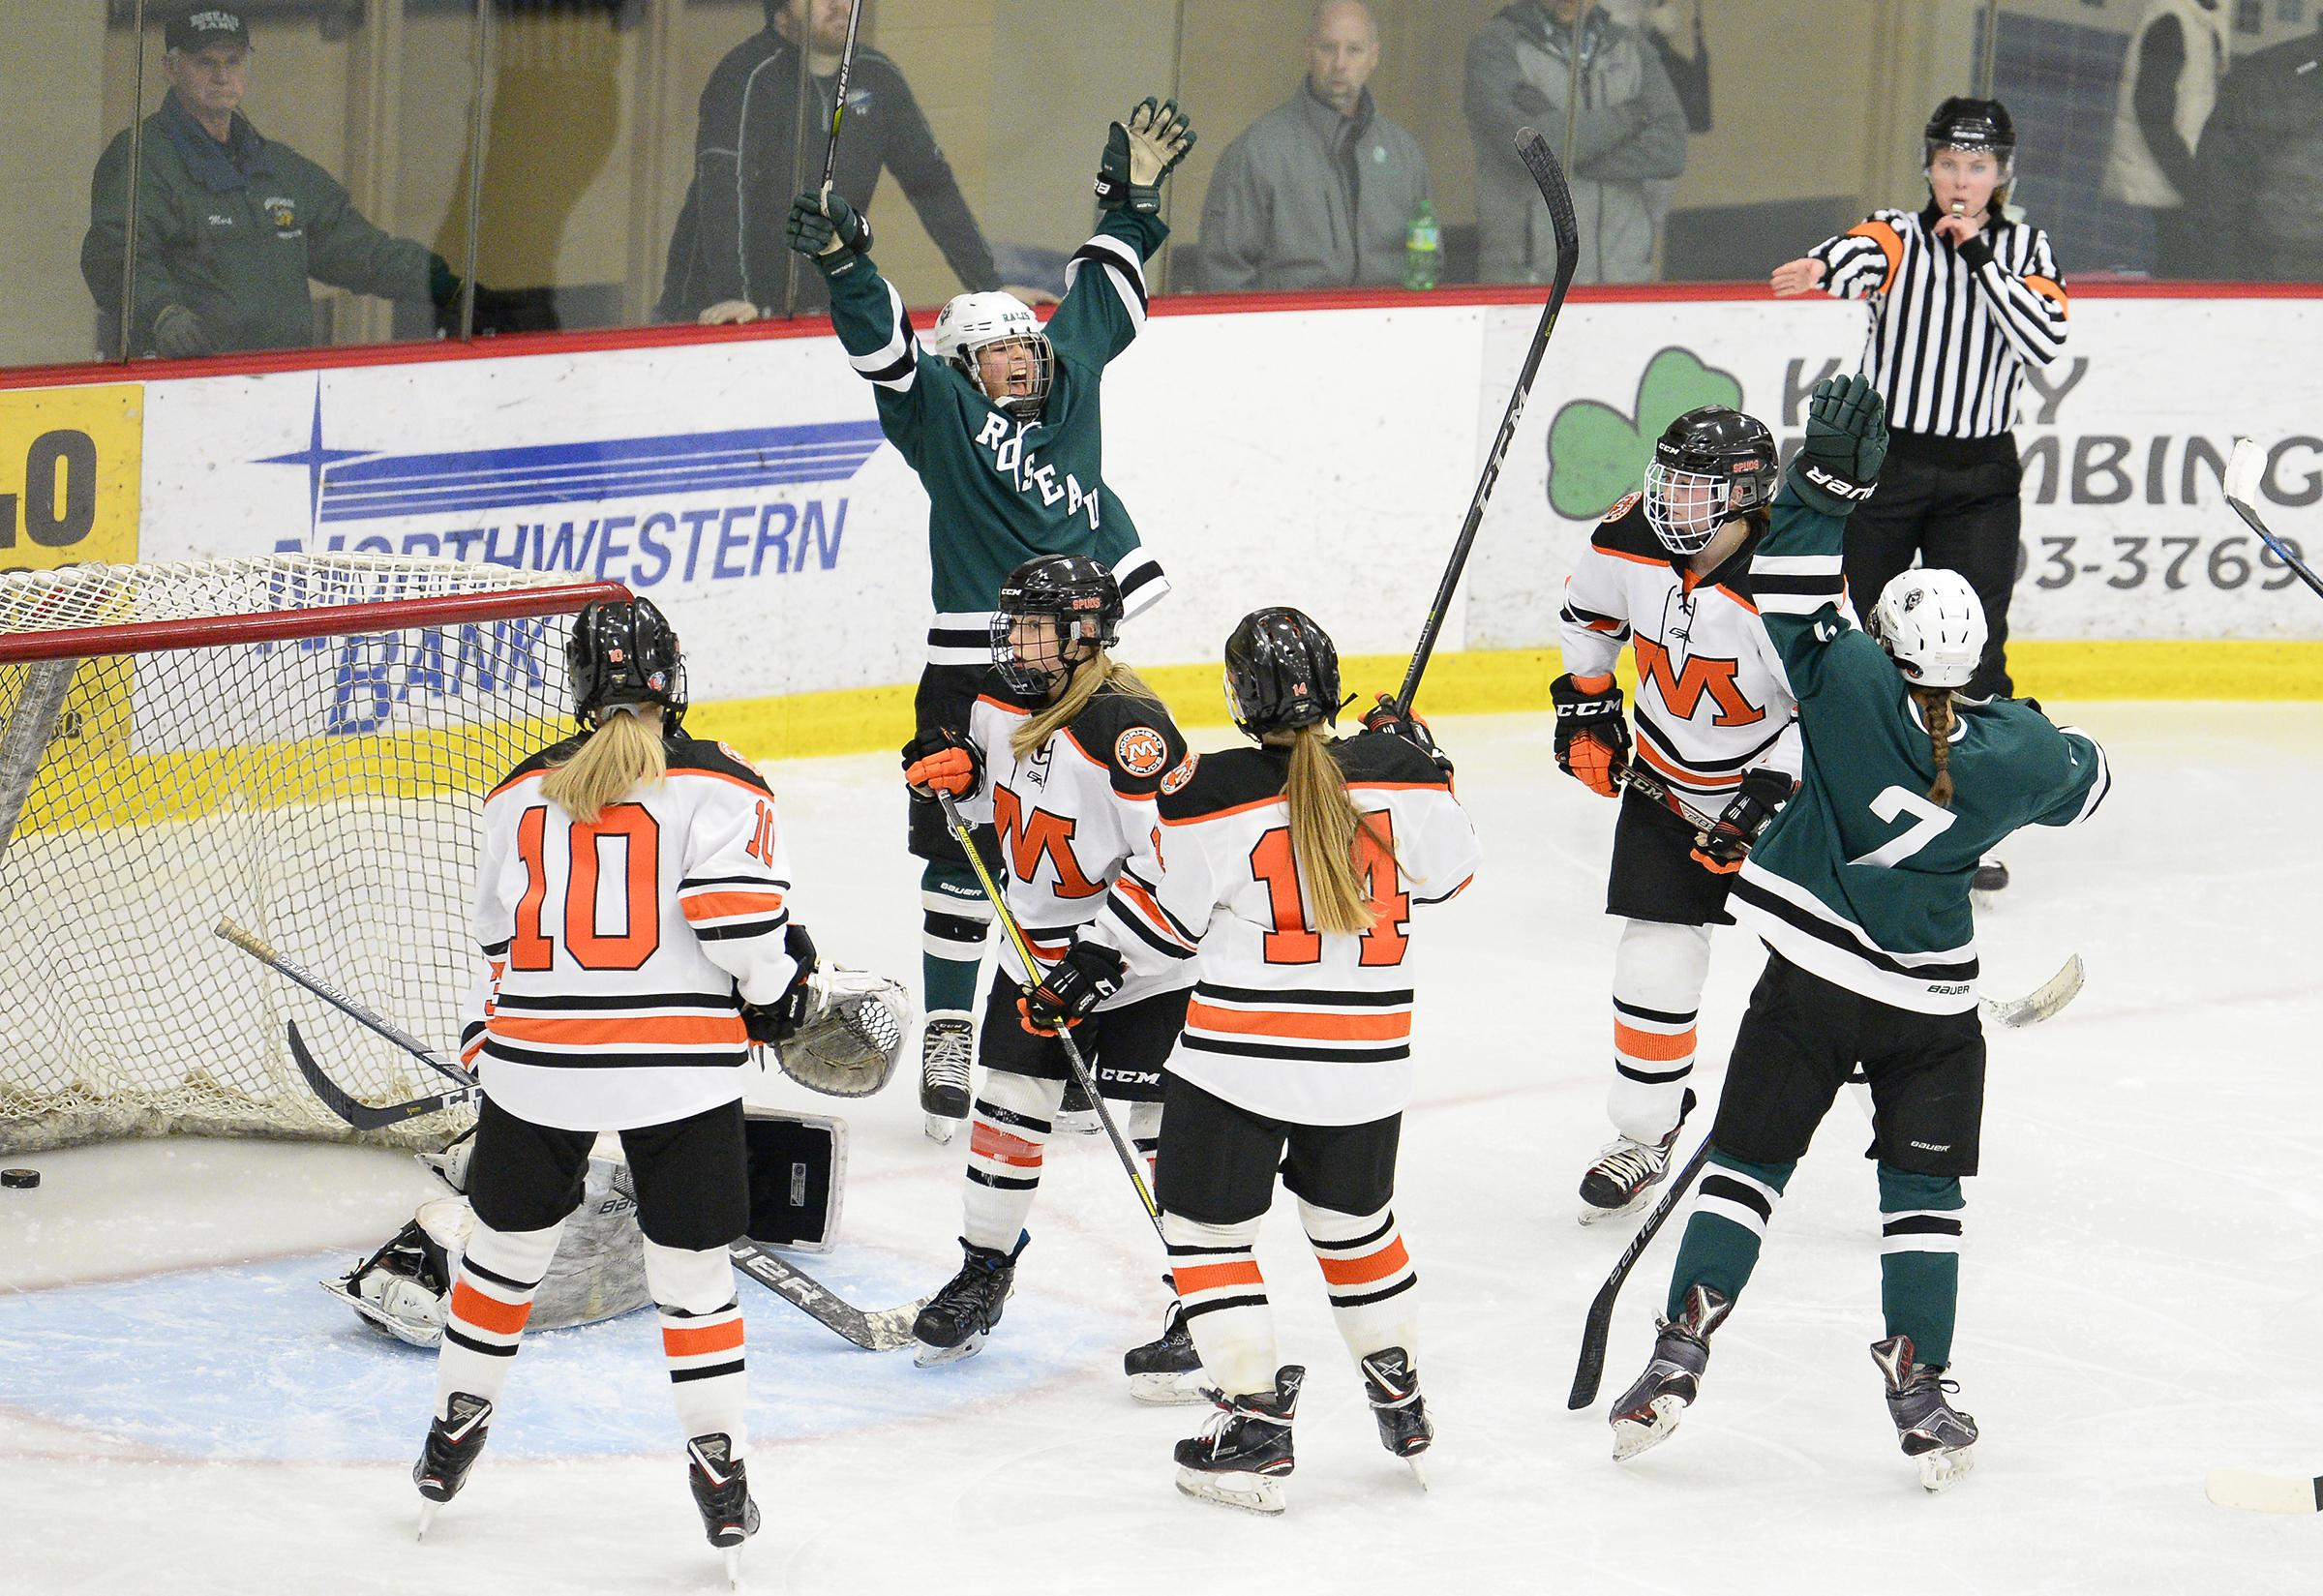 Roseau's Brooke Zagone (5) and Ella Helgeson (7) celebrate a second-period goal in the Rams' 6-0 victory at Moorhead Tuesday night. Photo by Tim Kolehmainen, SportsEngine